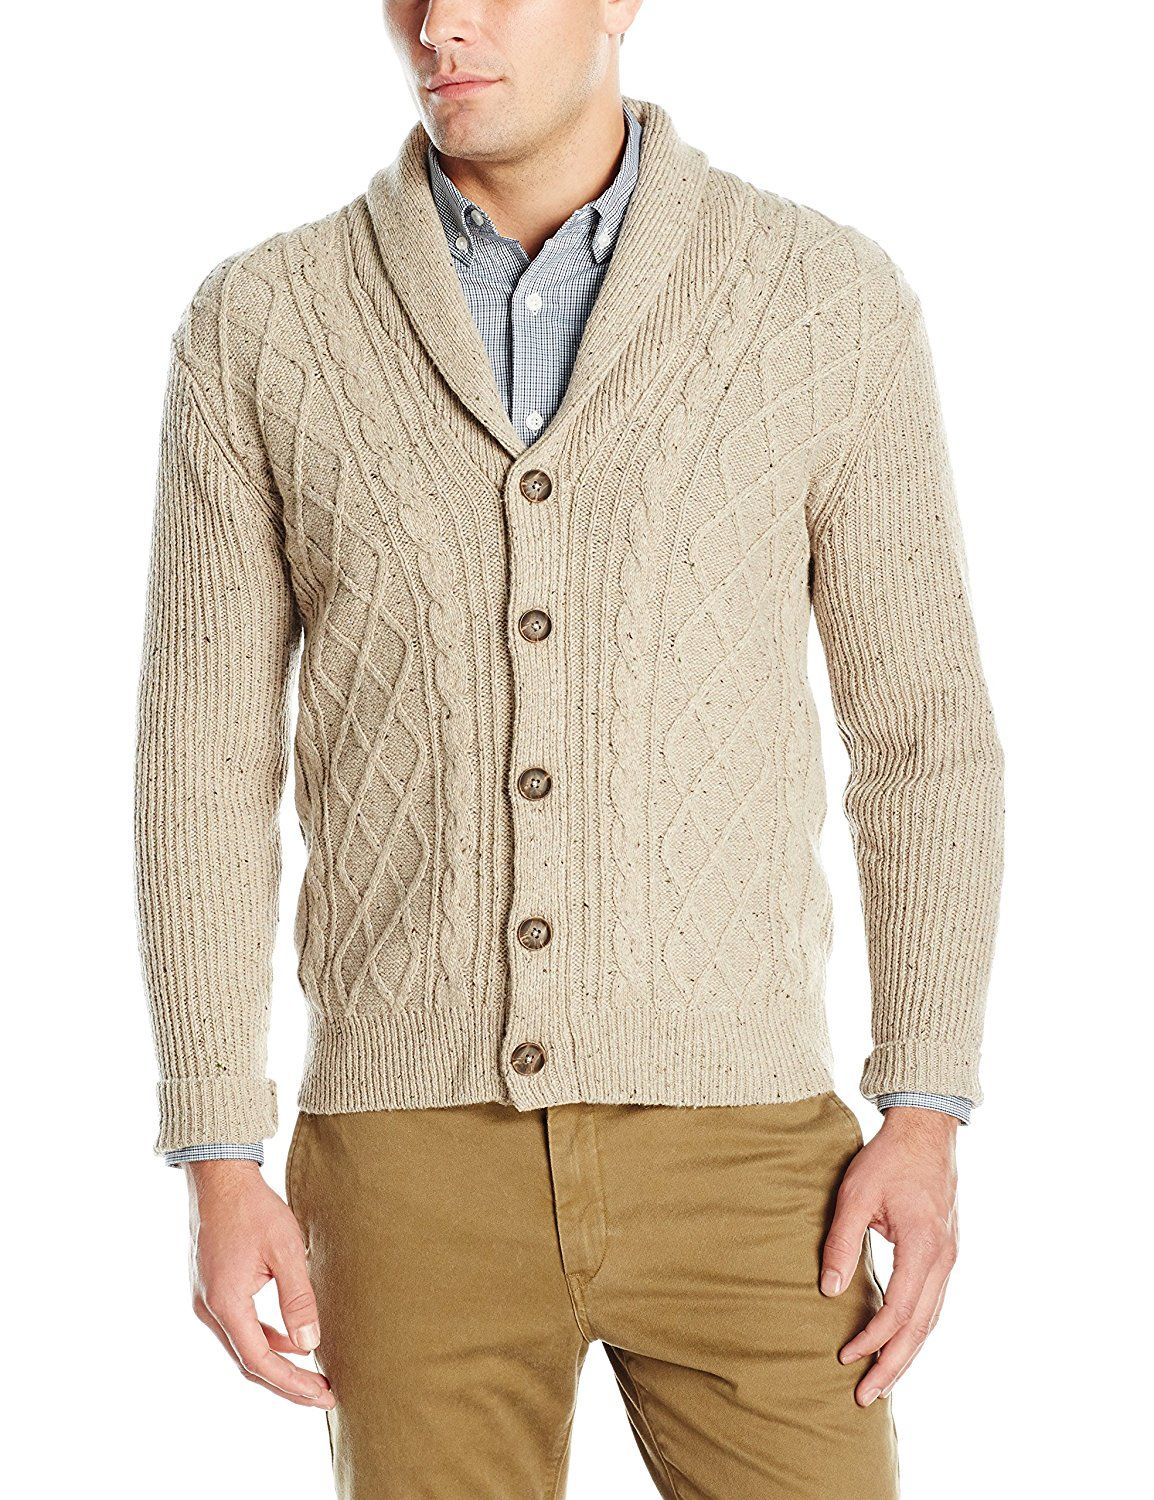 Dockers Men s Donegal Ls Lattice Cable Shawl Cardigan at Amazon Men s  Clothing store  1c0e3b913